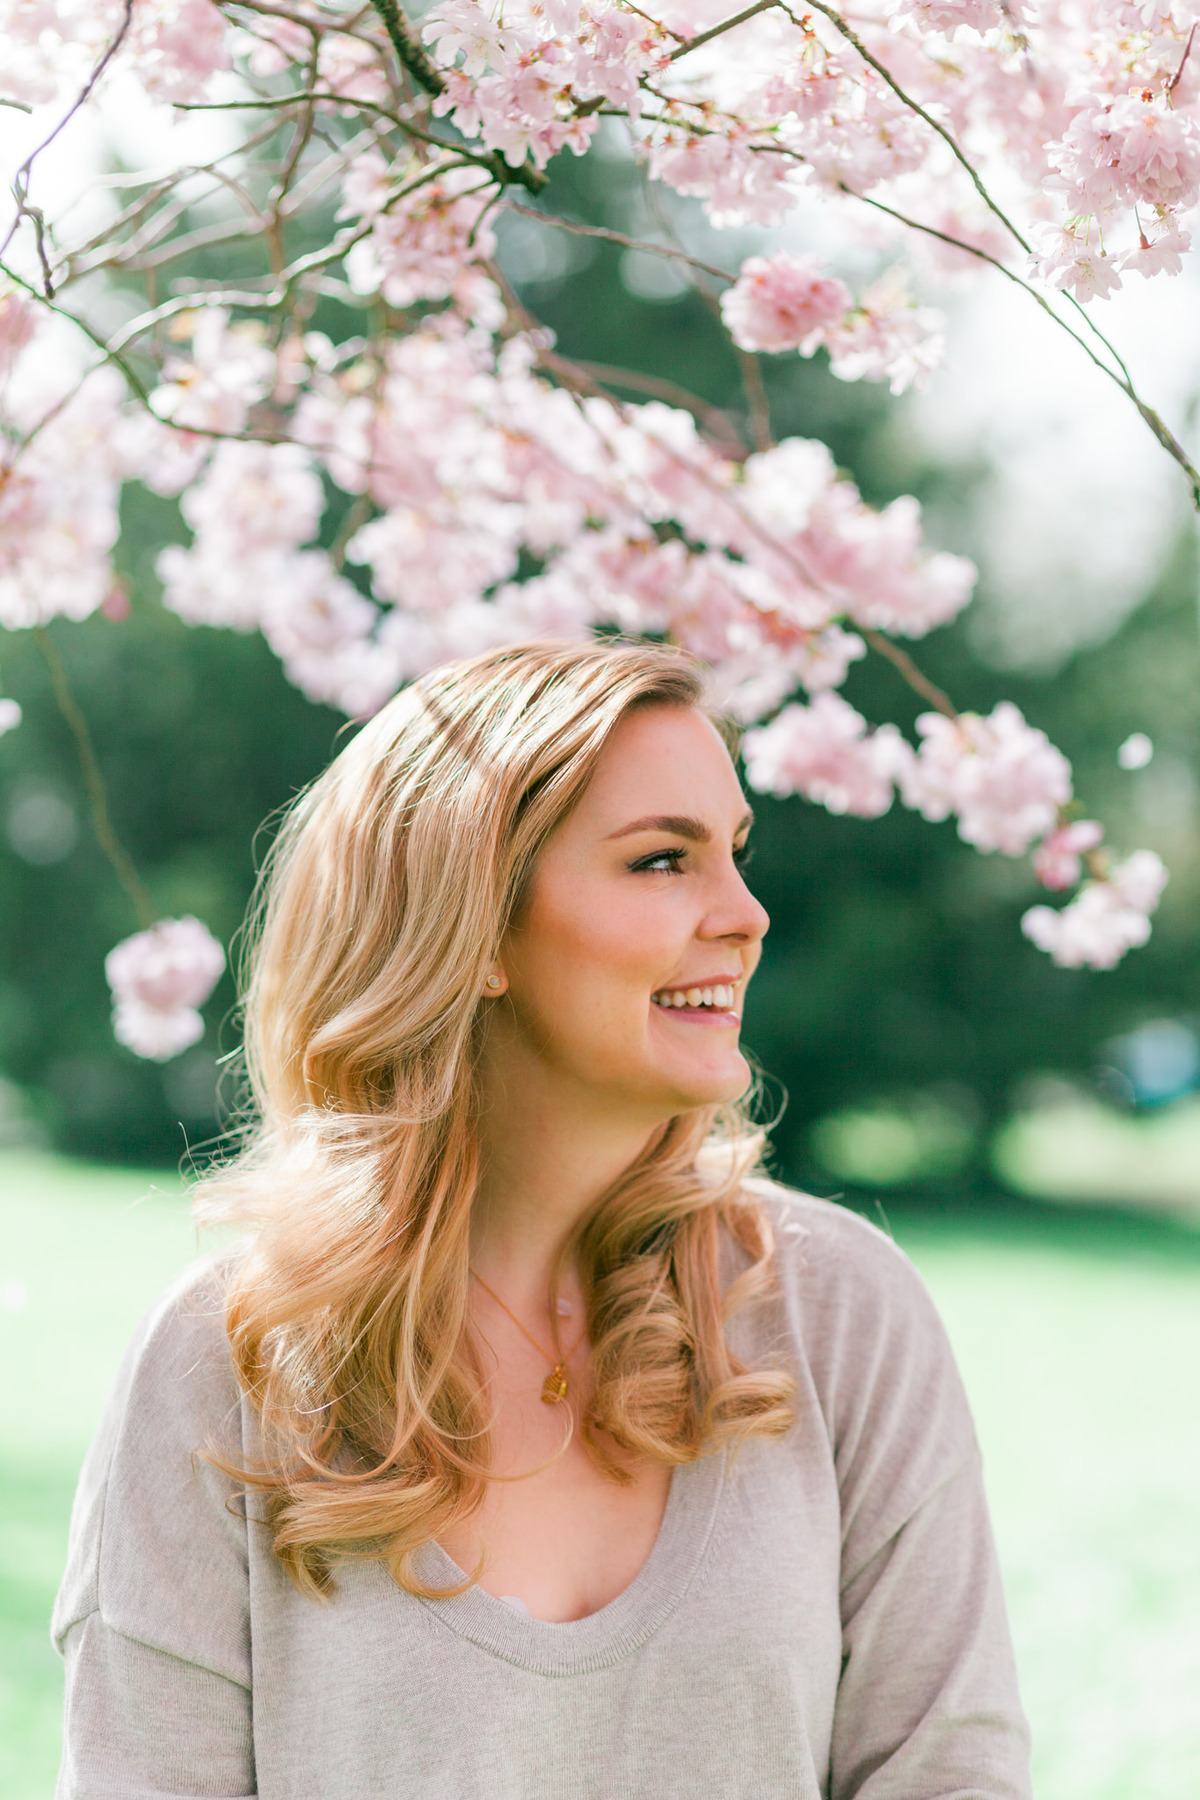 Branding headshot photo by Emma Jackson Photography of a woman in a neutral top standing amongst pink blossom laughing